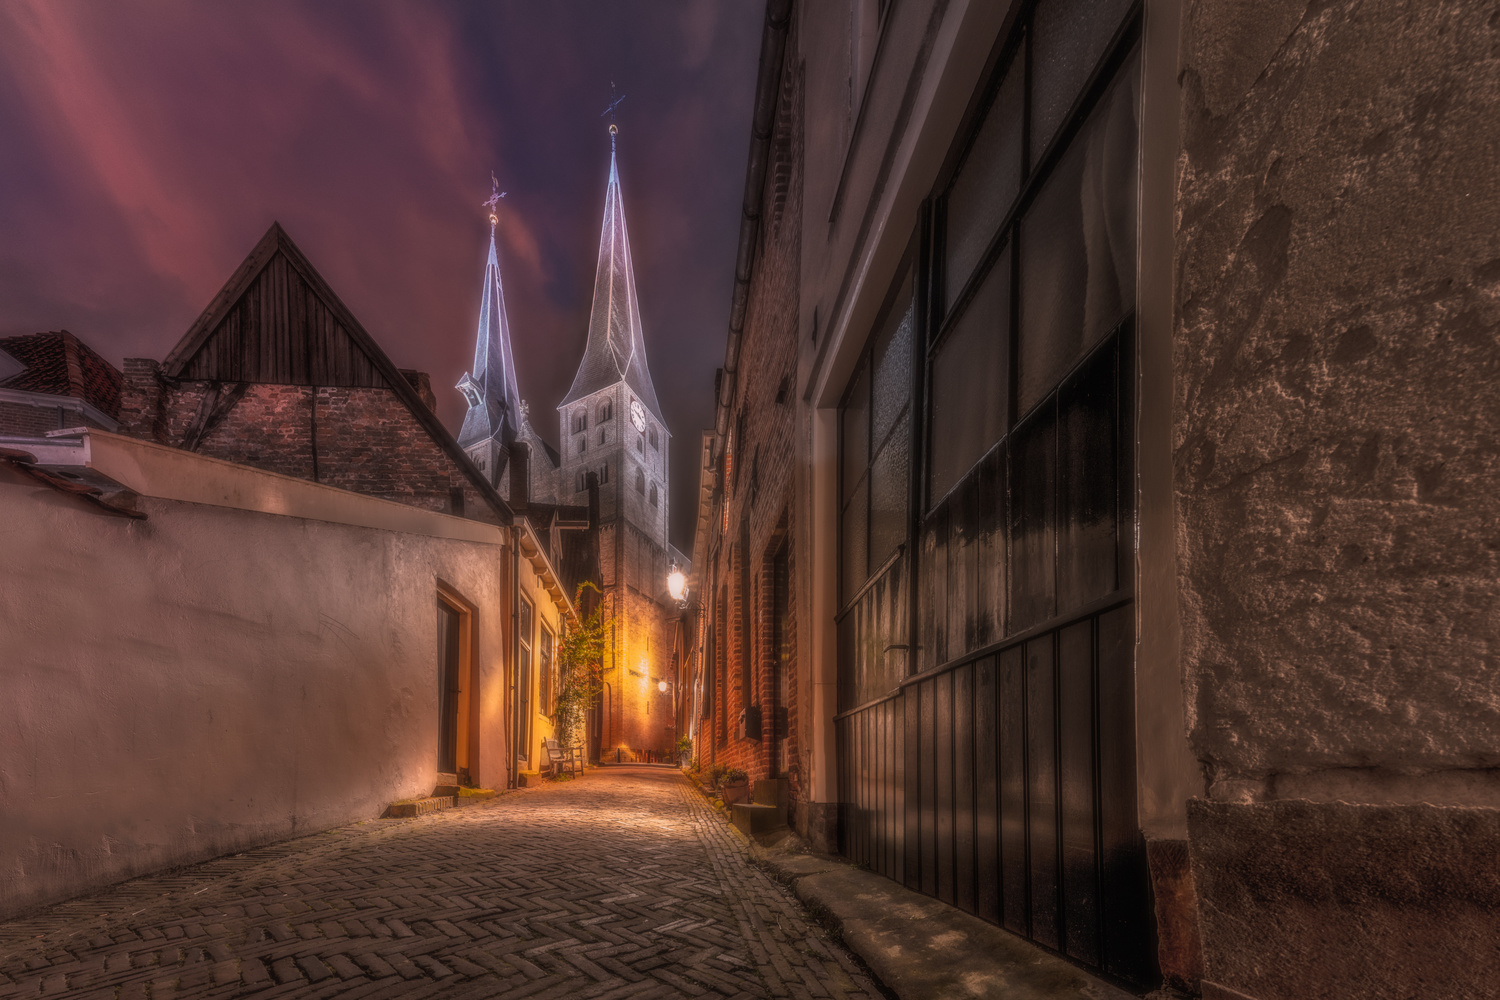 The church at the end of the street by Matthijs Bettman